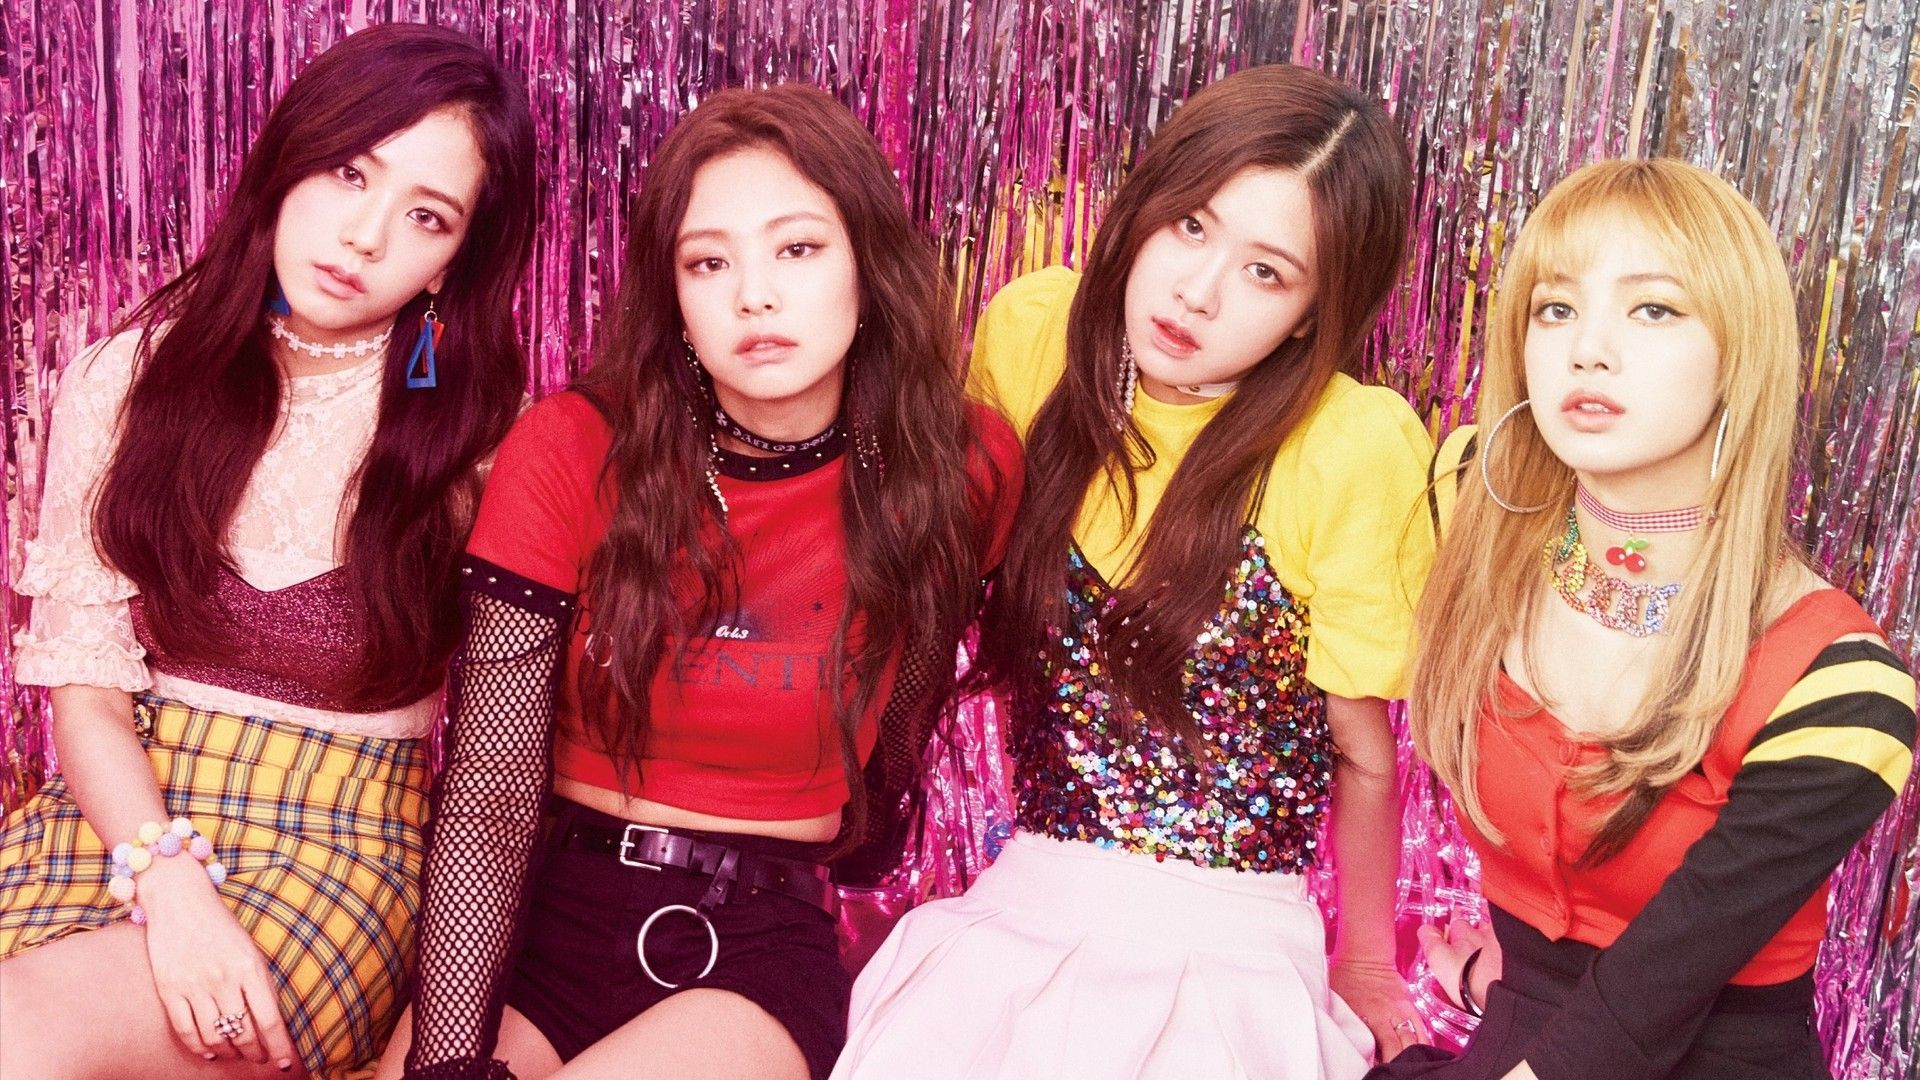 Blackpink 1920x1080 Wallpapers Top Free Blackpink 1920x1080